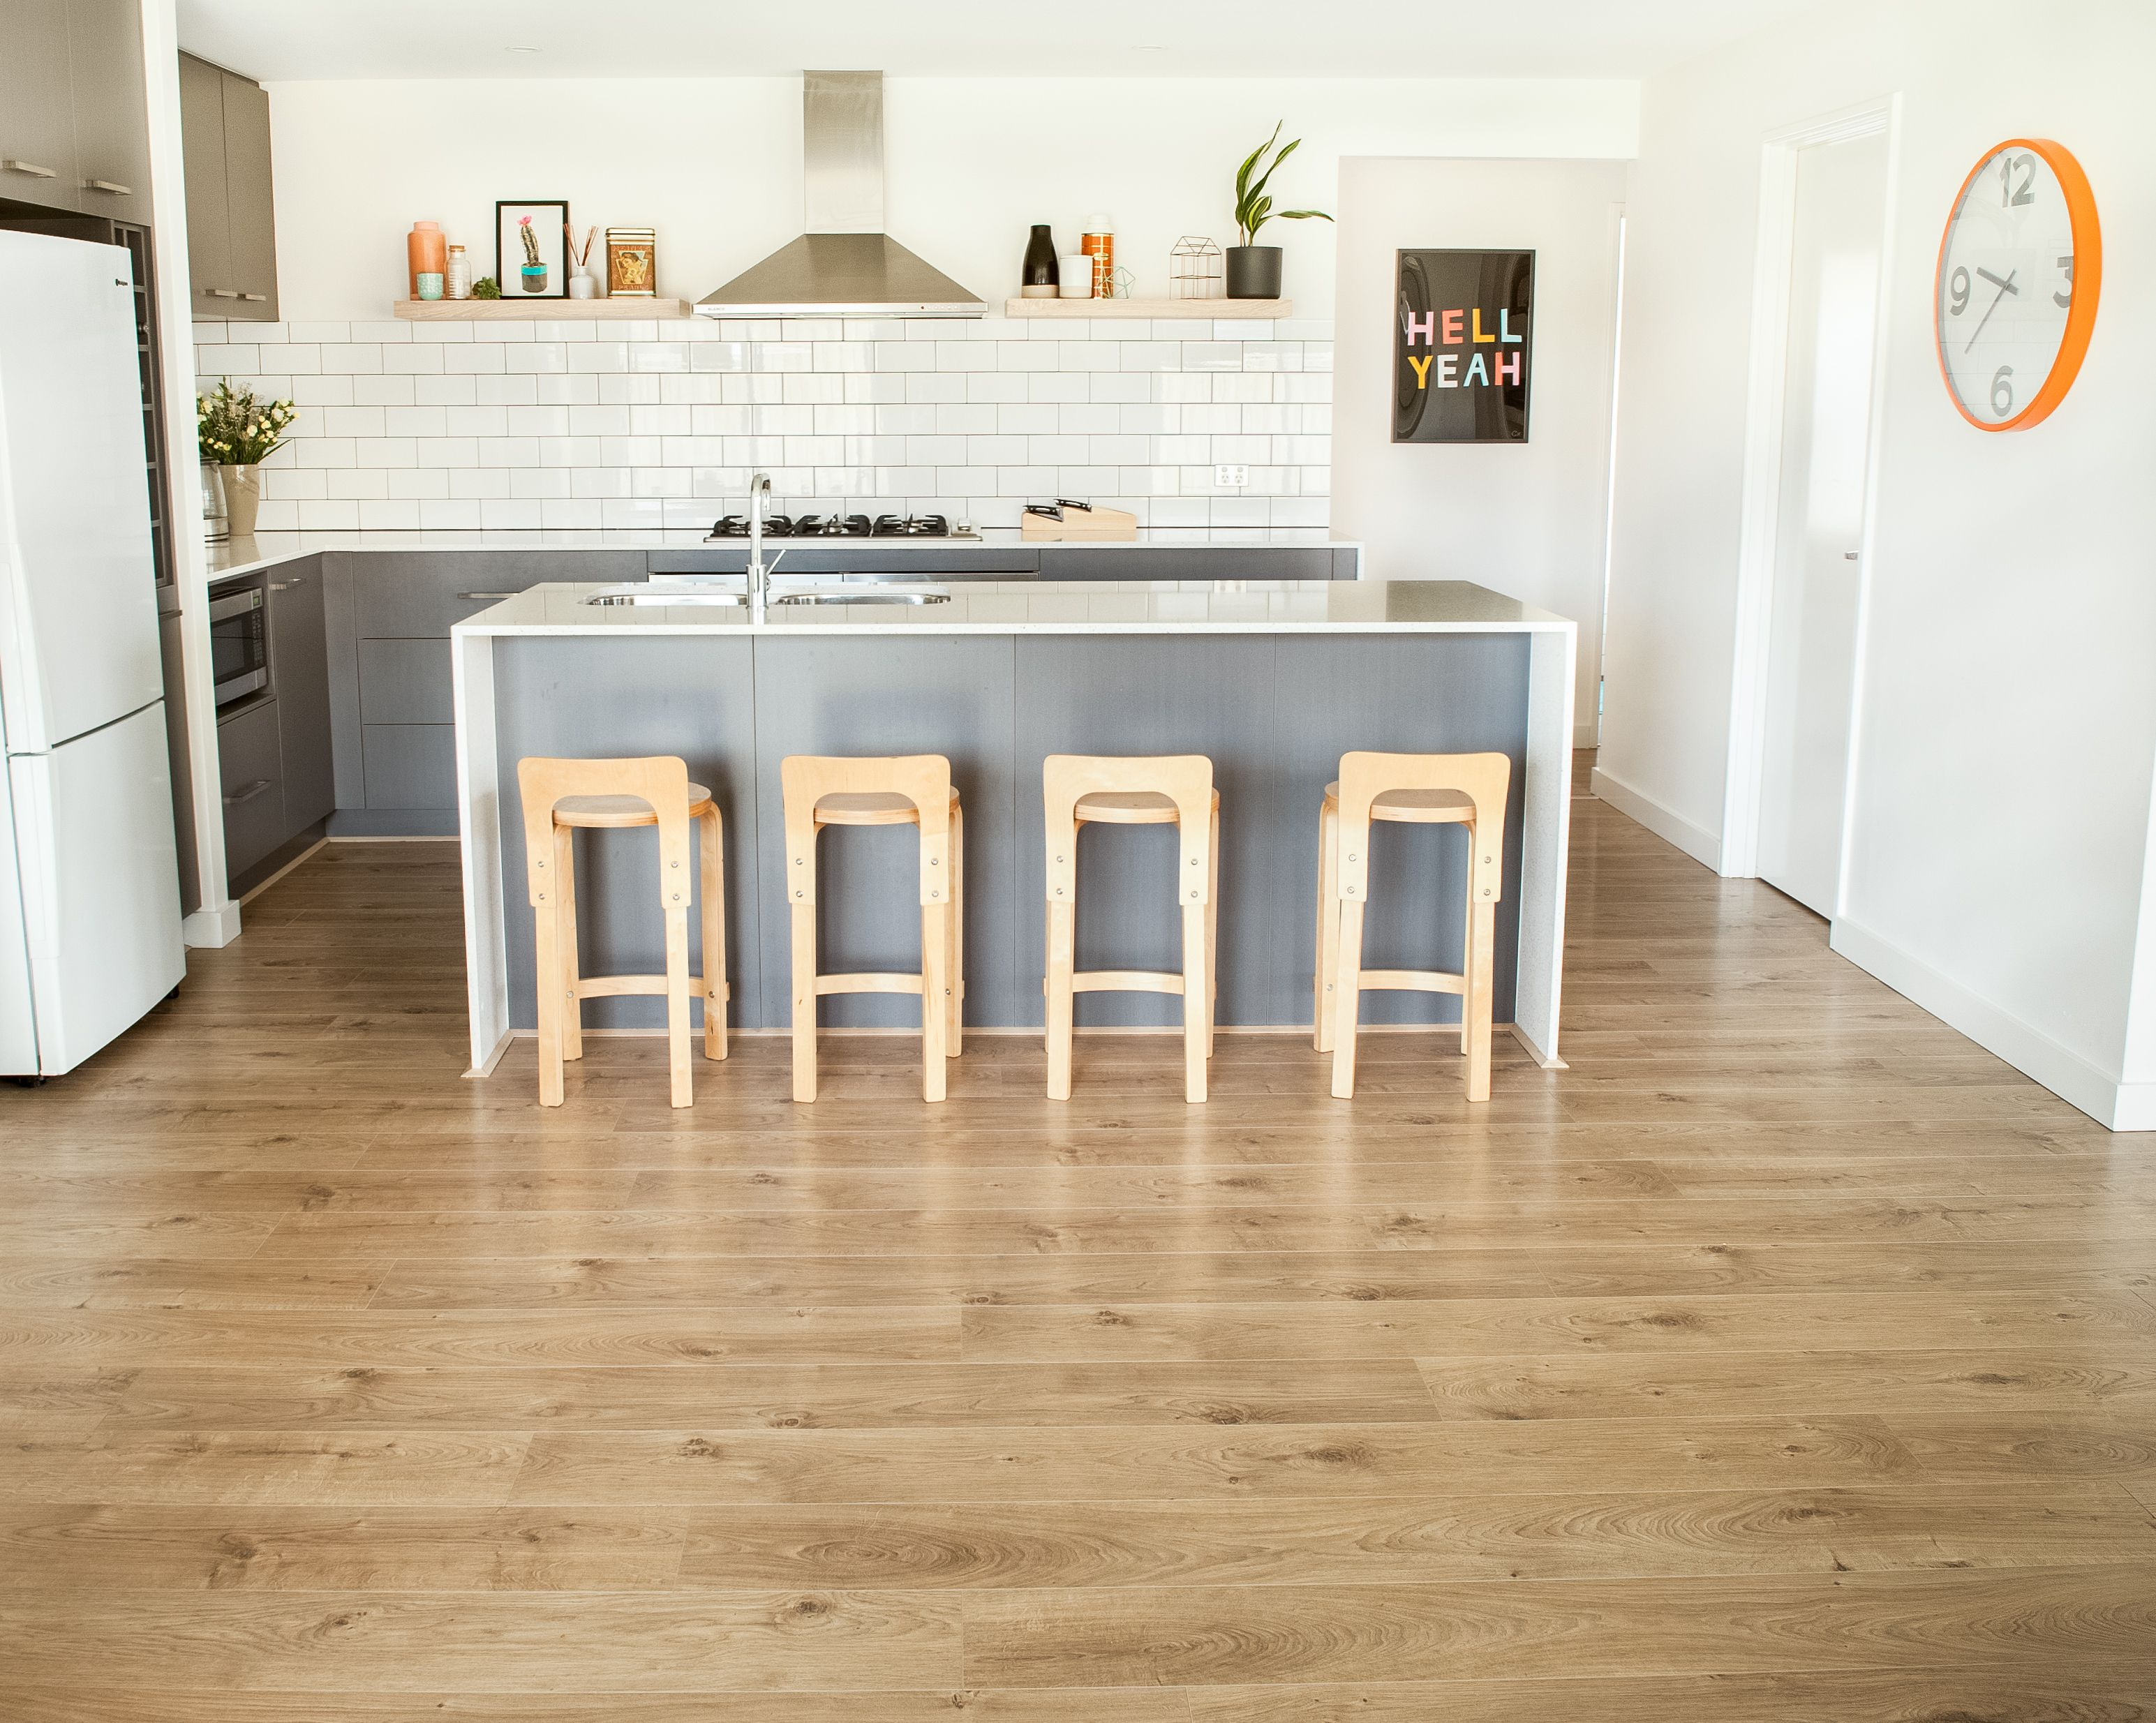 Godfrey Hirst Laminate Flooring Get The Look With Vue Mountain Oak In Parchment Godfreyhirs House Flooring Kitchen Tiles Design Laminate Flooring Bathroom